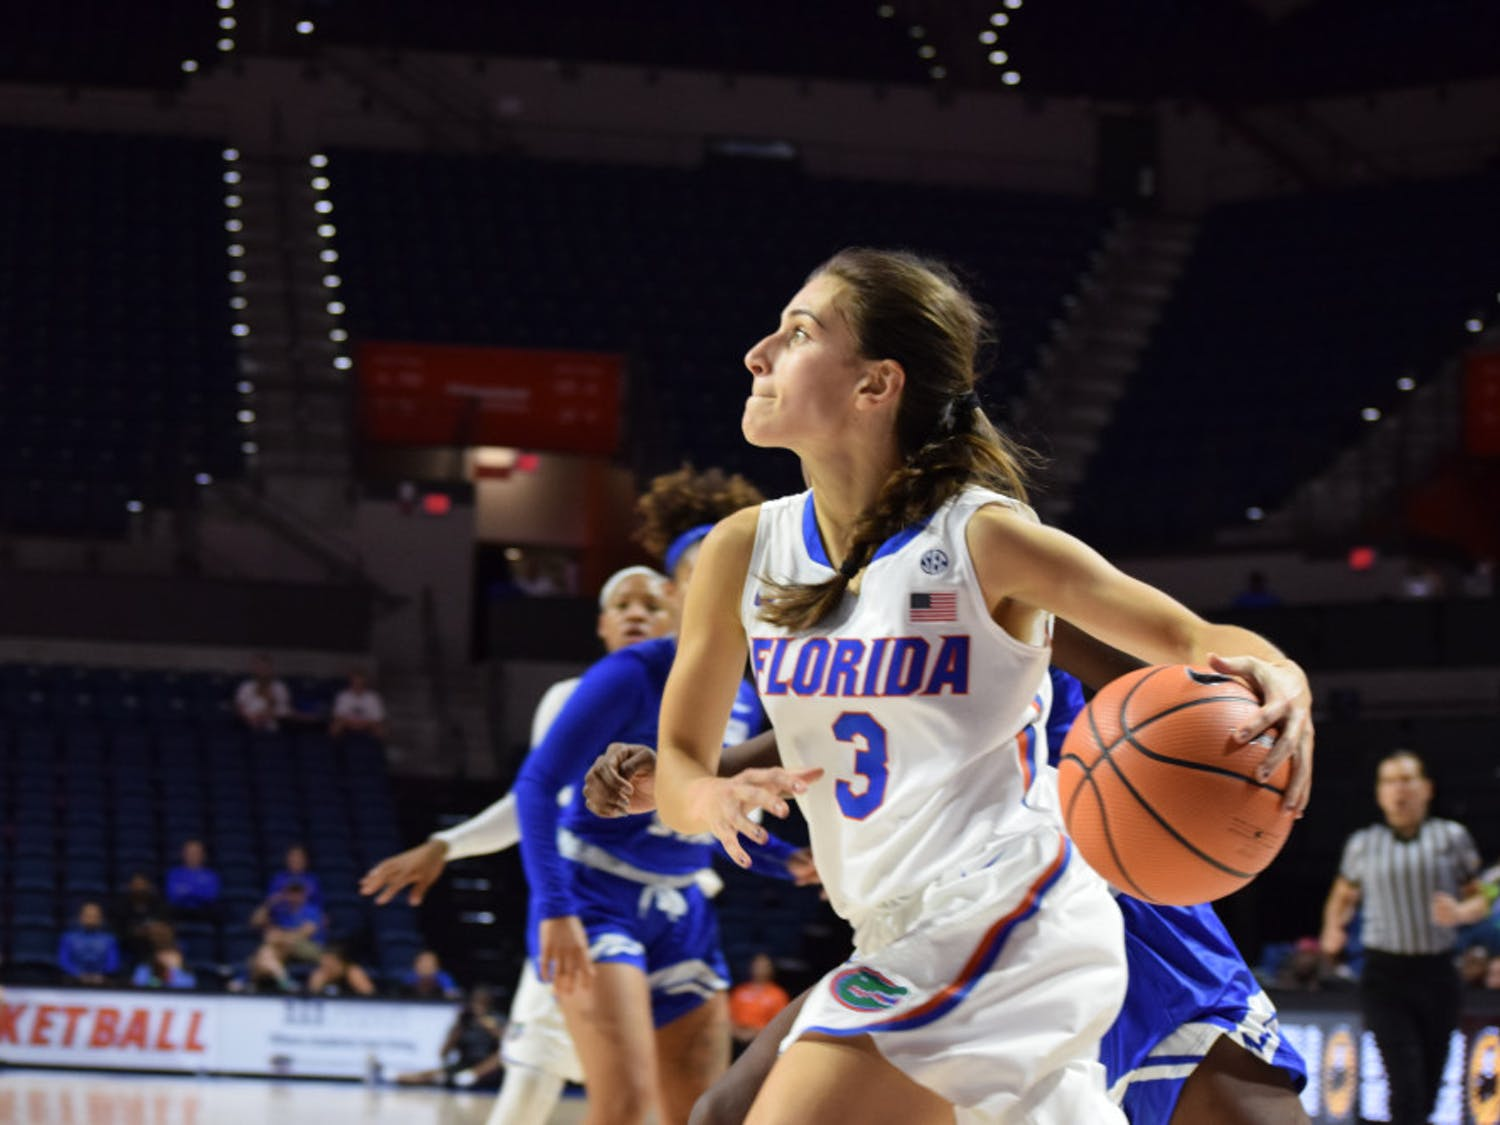 Before she suffered the injury, Funda Nakkasoglu led the Gators to their second win of the season against the Richmond Spiders, 87-80, in their opening game of the Savannah Invitational, scoring a season-high 25 points.